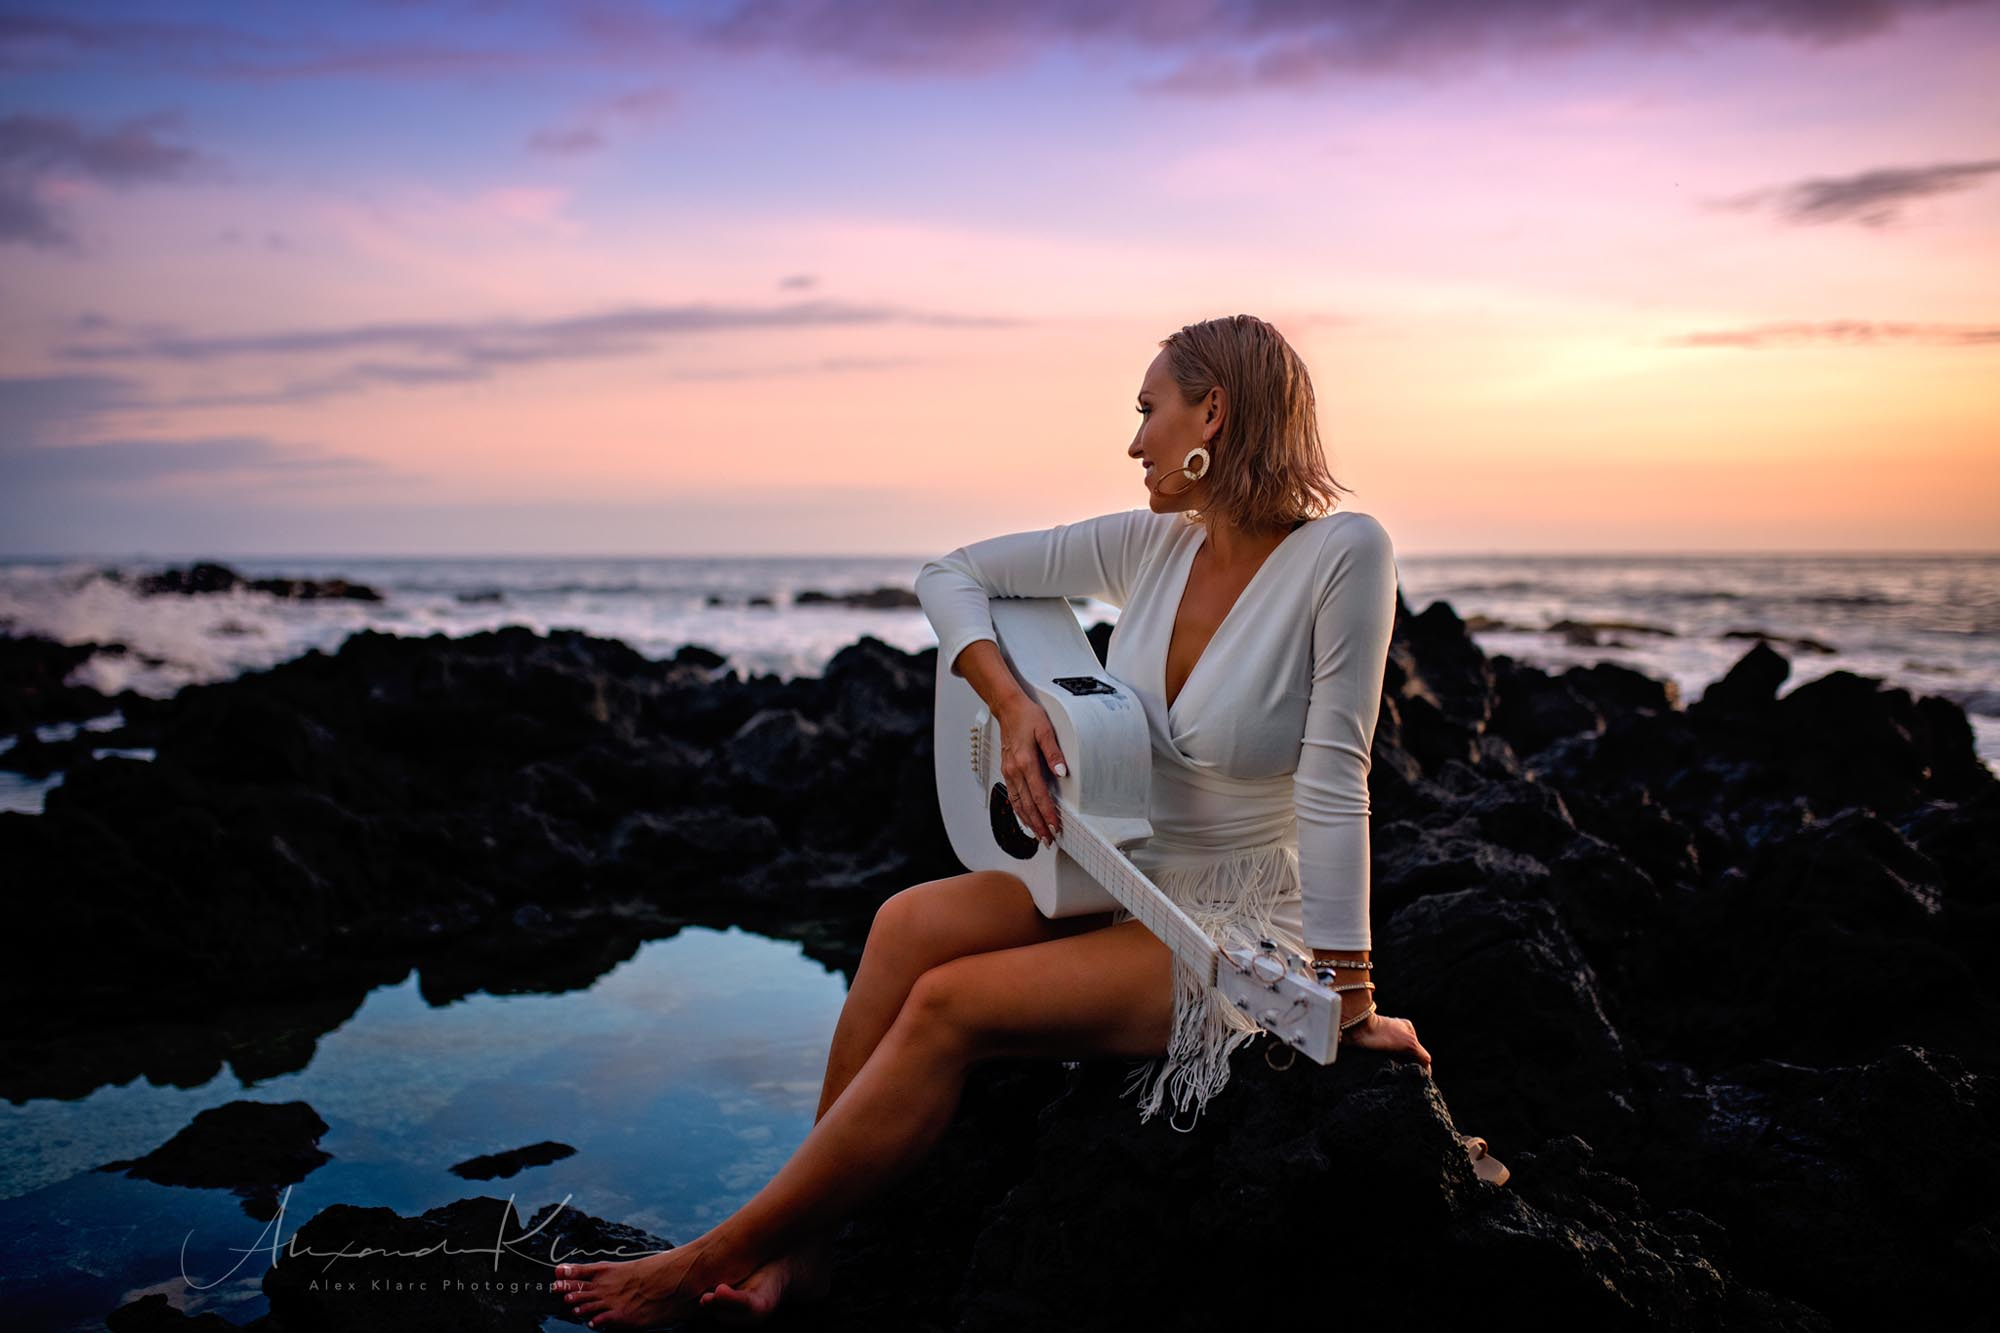 anuhea-sunset-hawaii-kailua-kona-guitar-alexklarc-©-photography.jpg